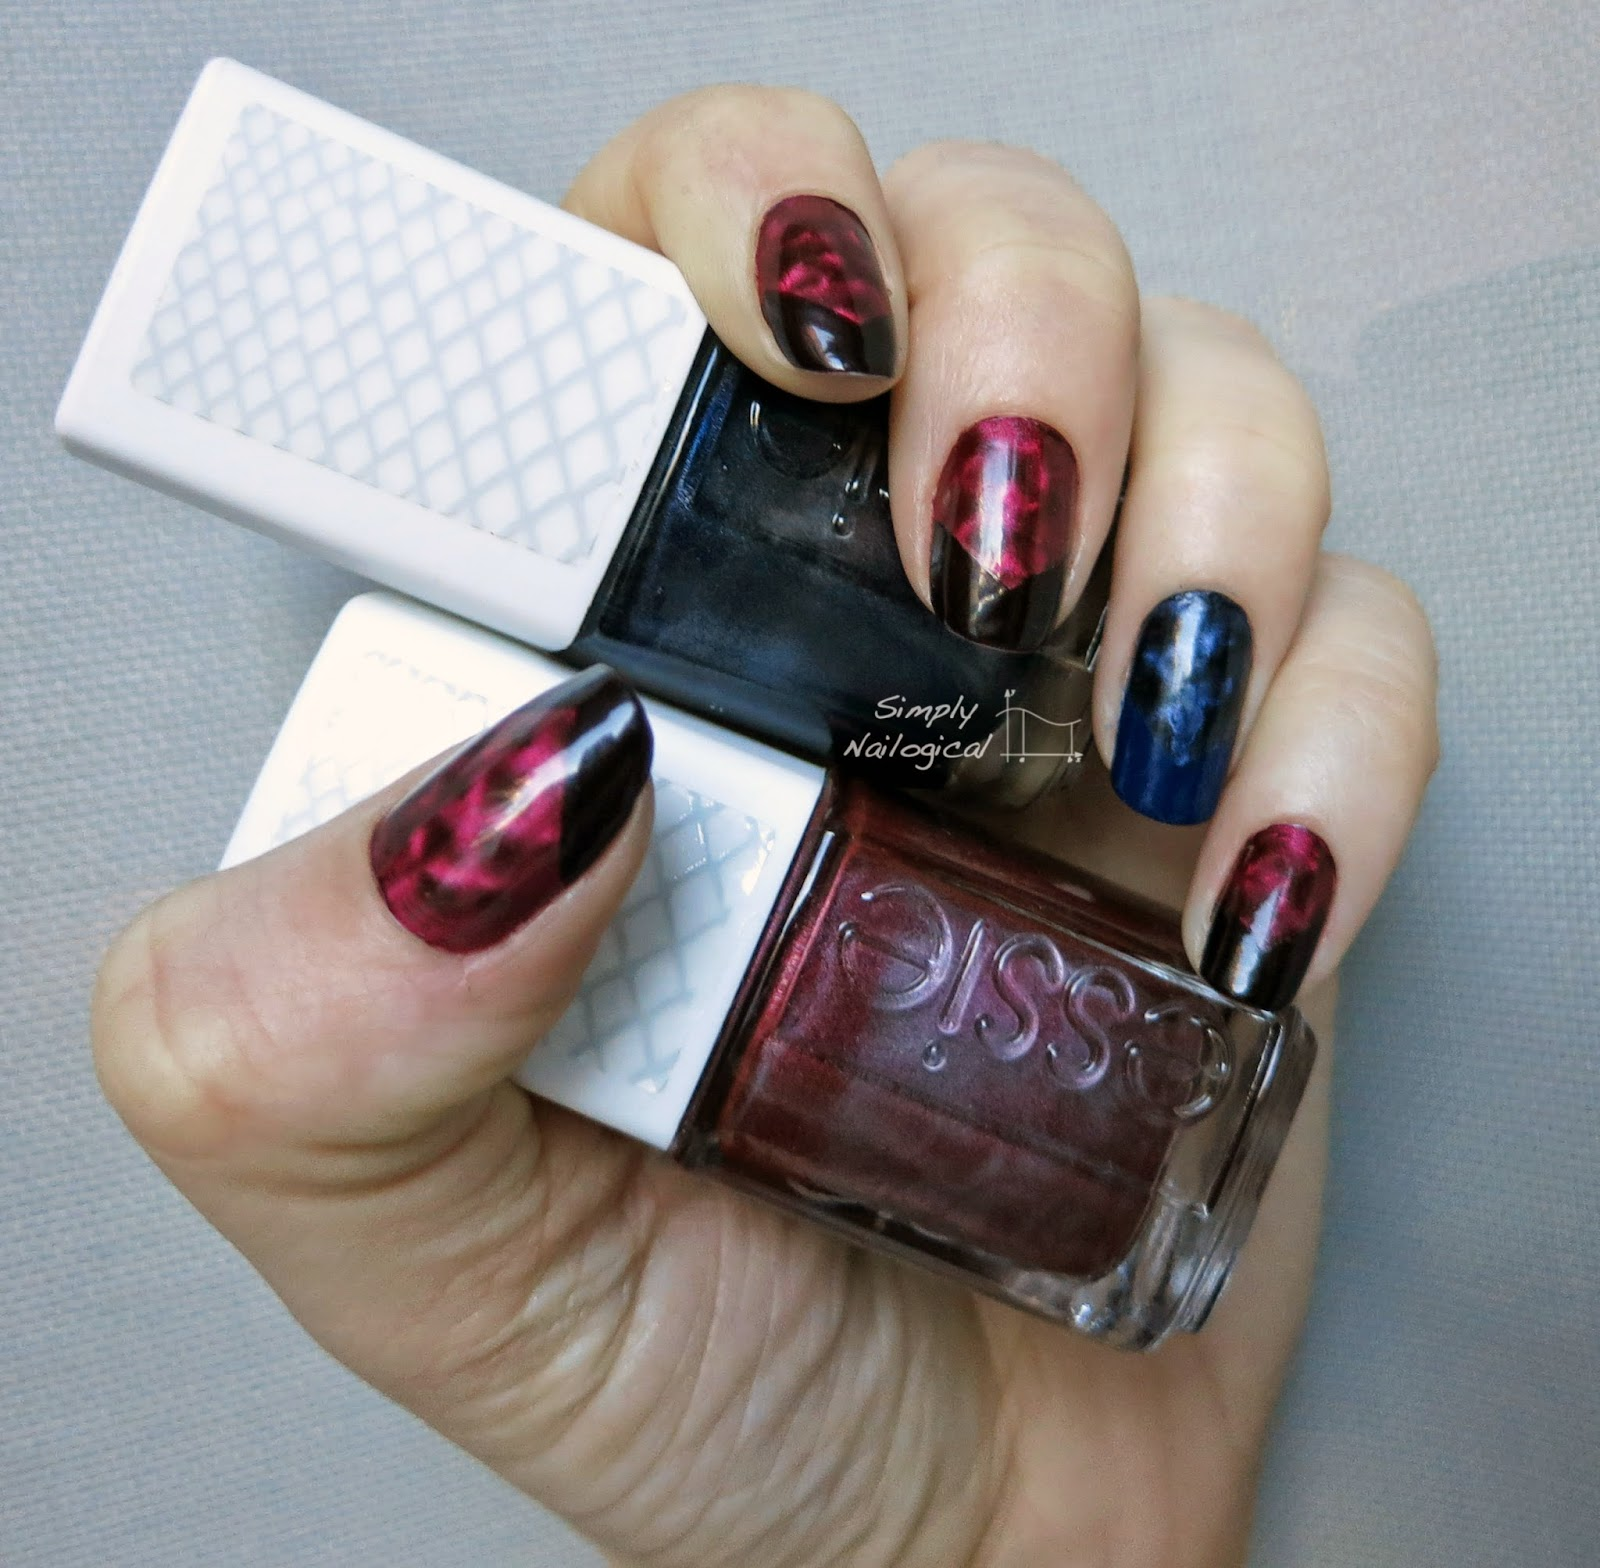 Essie Repstyle Magnetic Snake Effect Nail Polishes